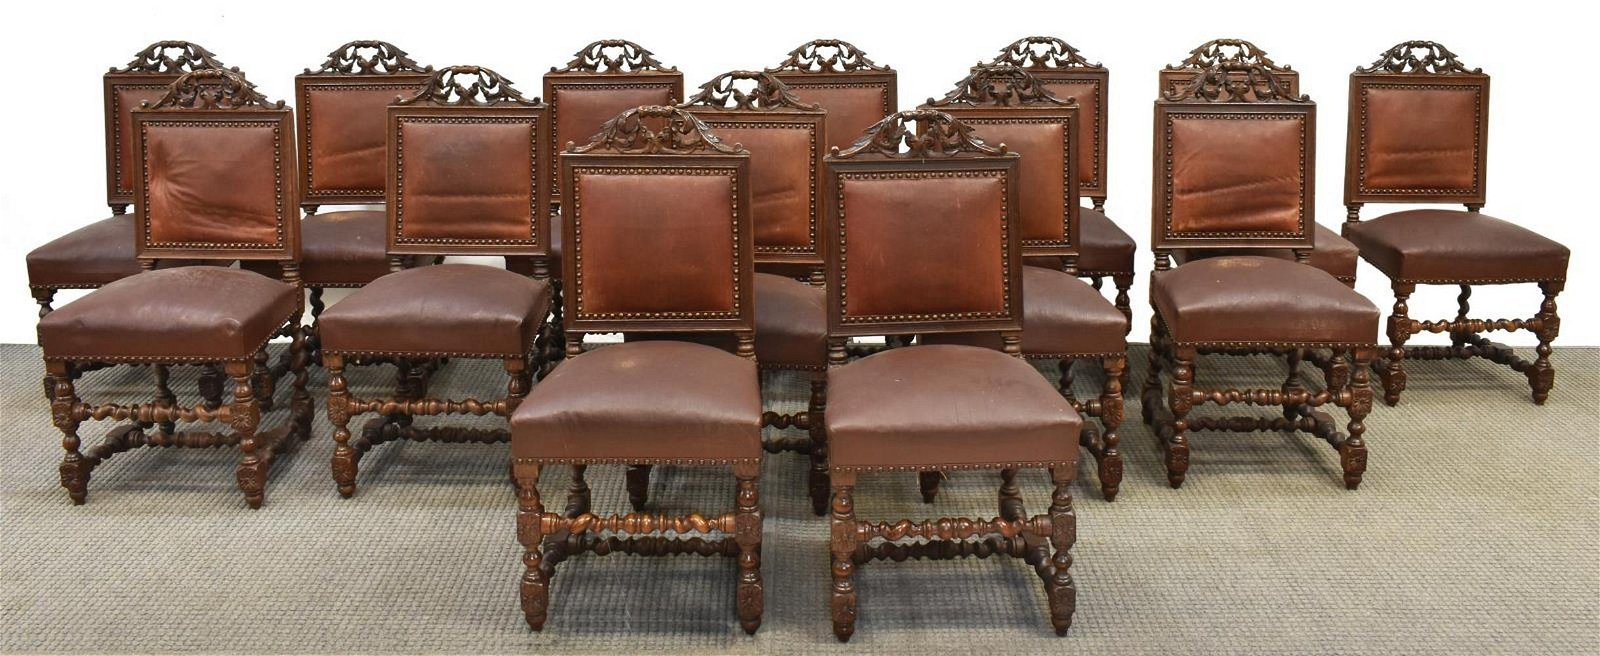 14) FRENCH HENRI II STYLE CARVED OAK DINING CHAIRS